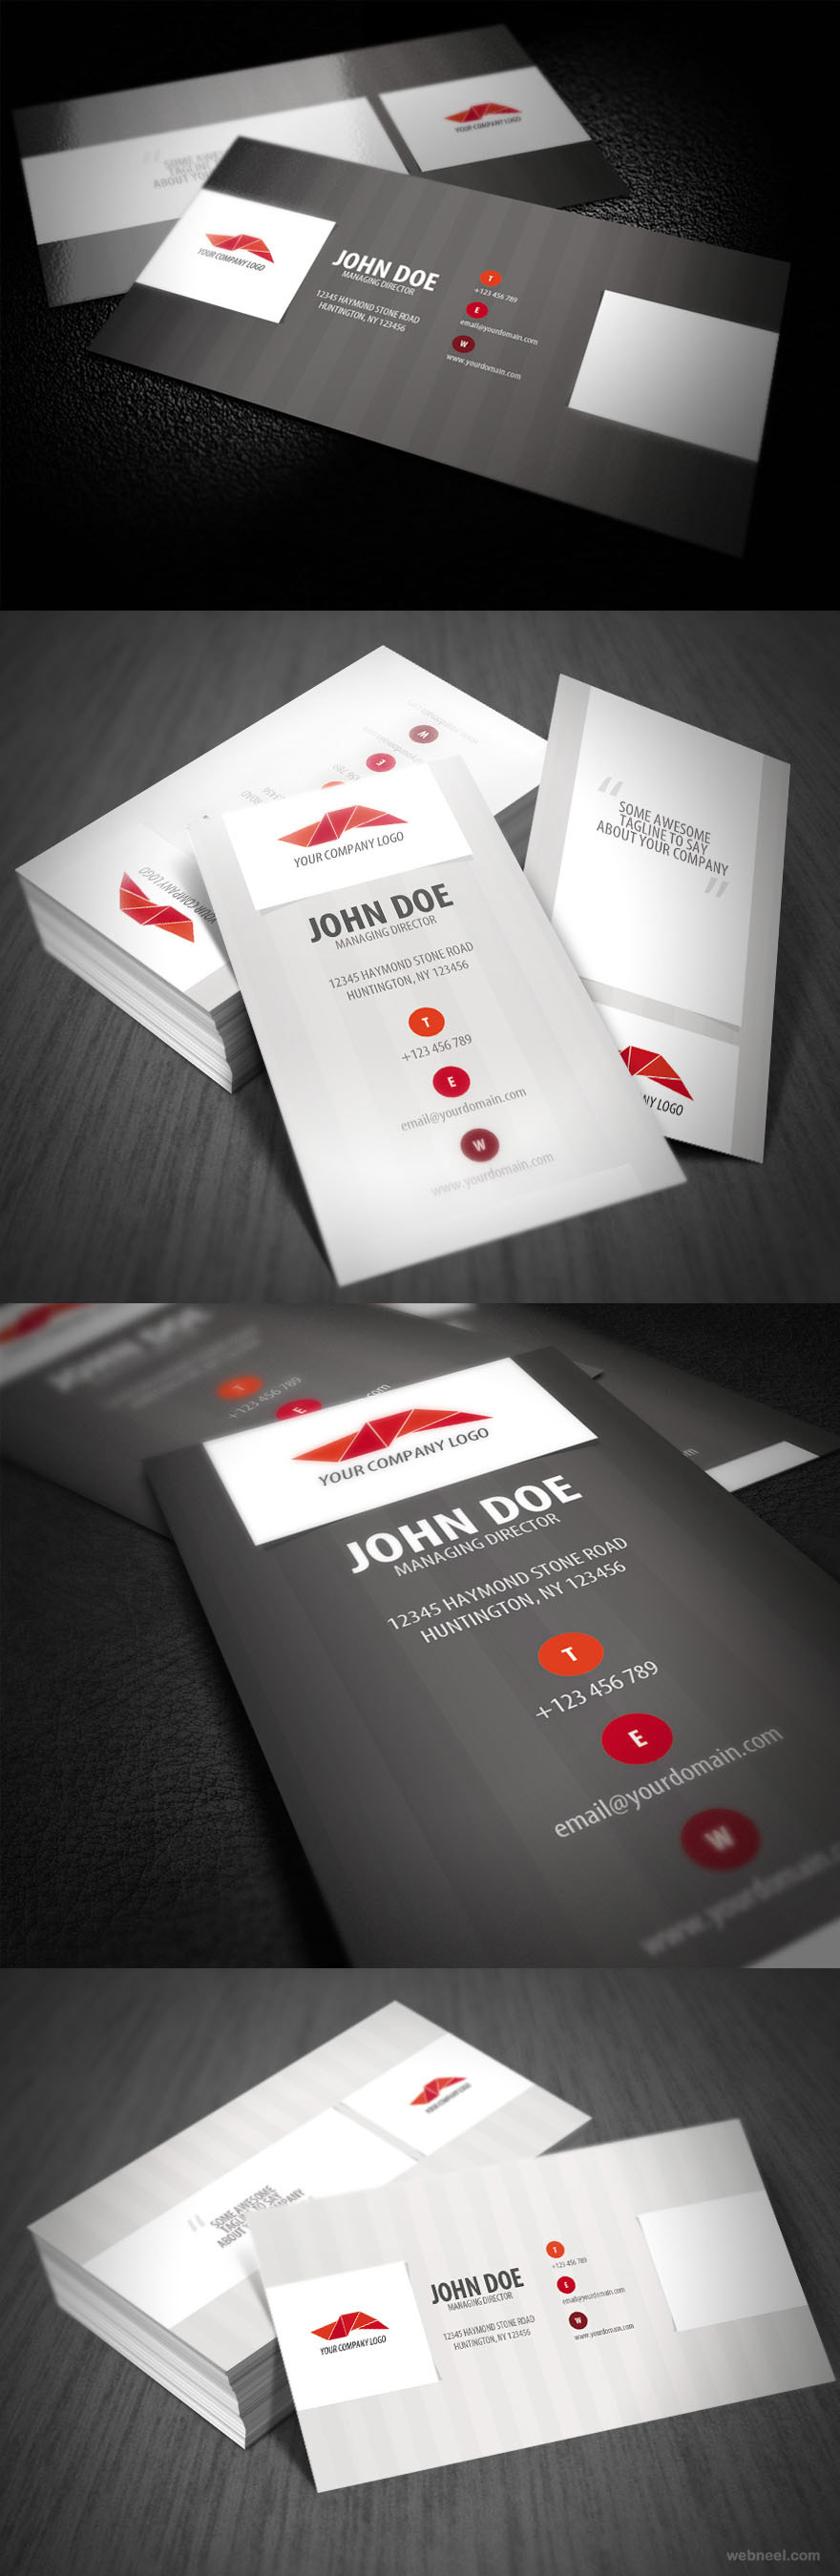 Corporate business card design 22 preview for Corporate business card designs